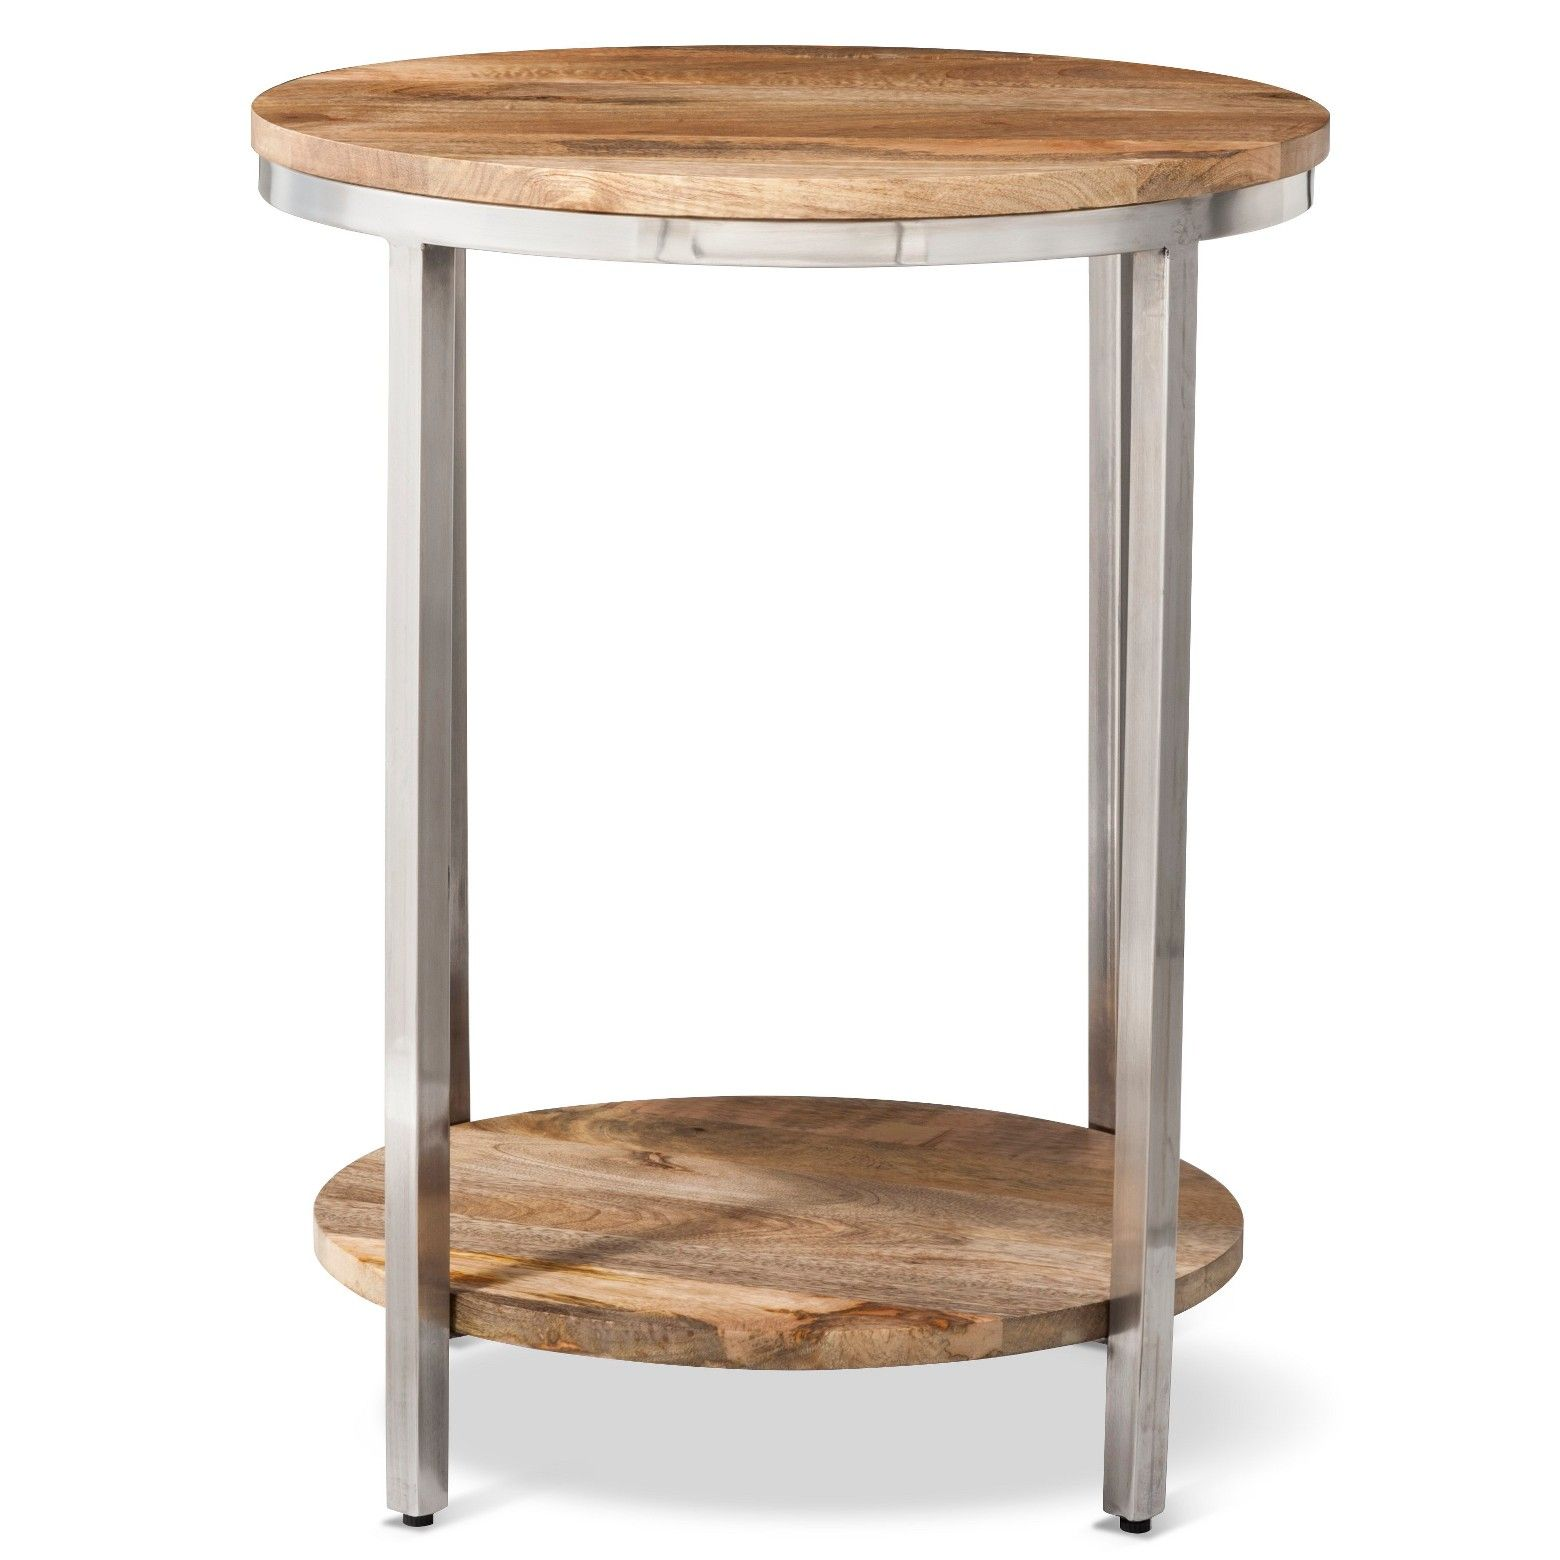 mango wood accent table the terrific awesome berwyn end large round metal and threshold rustic brown mid century modern coffee set wireless phone charger tartan paper tablecloths